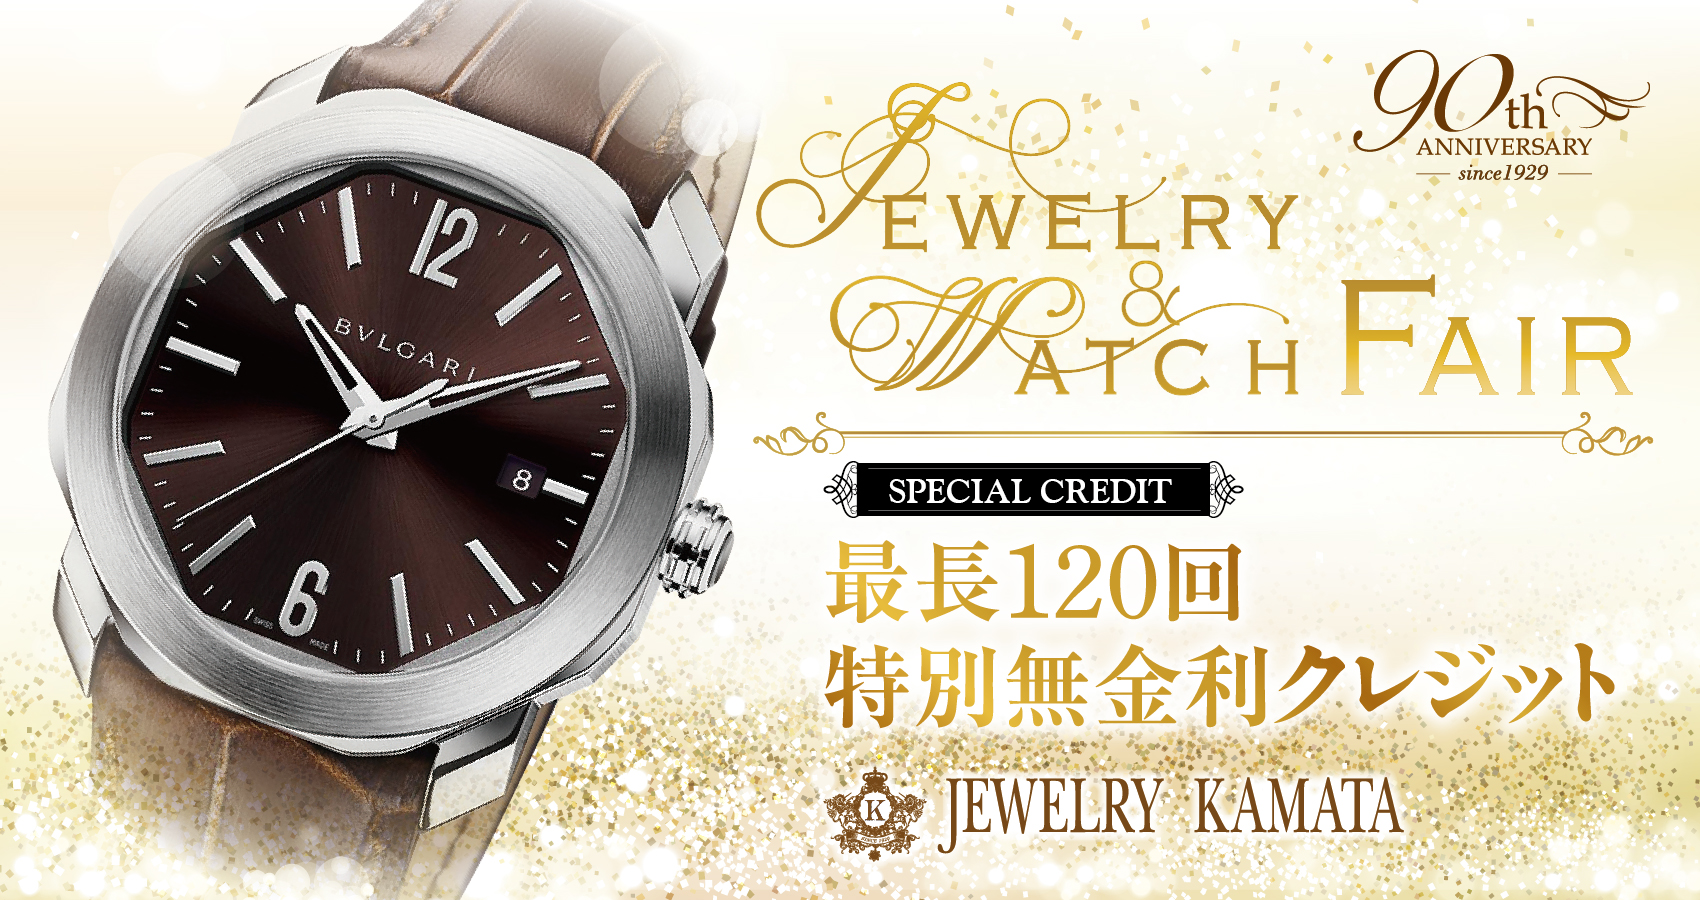 10/11(金)~ 90th Anniversary JEWELRY&WATCH FAIR